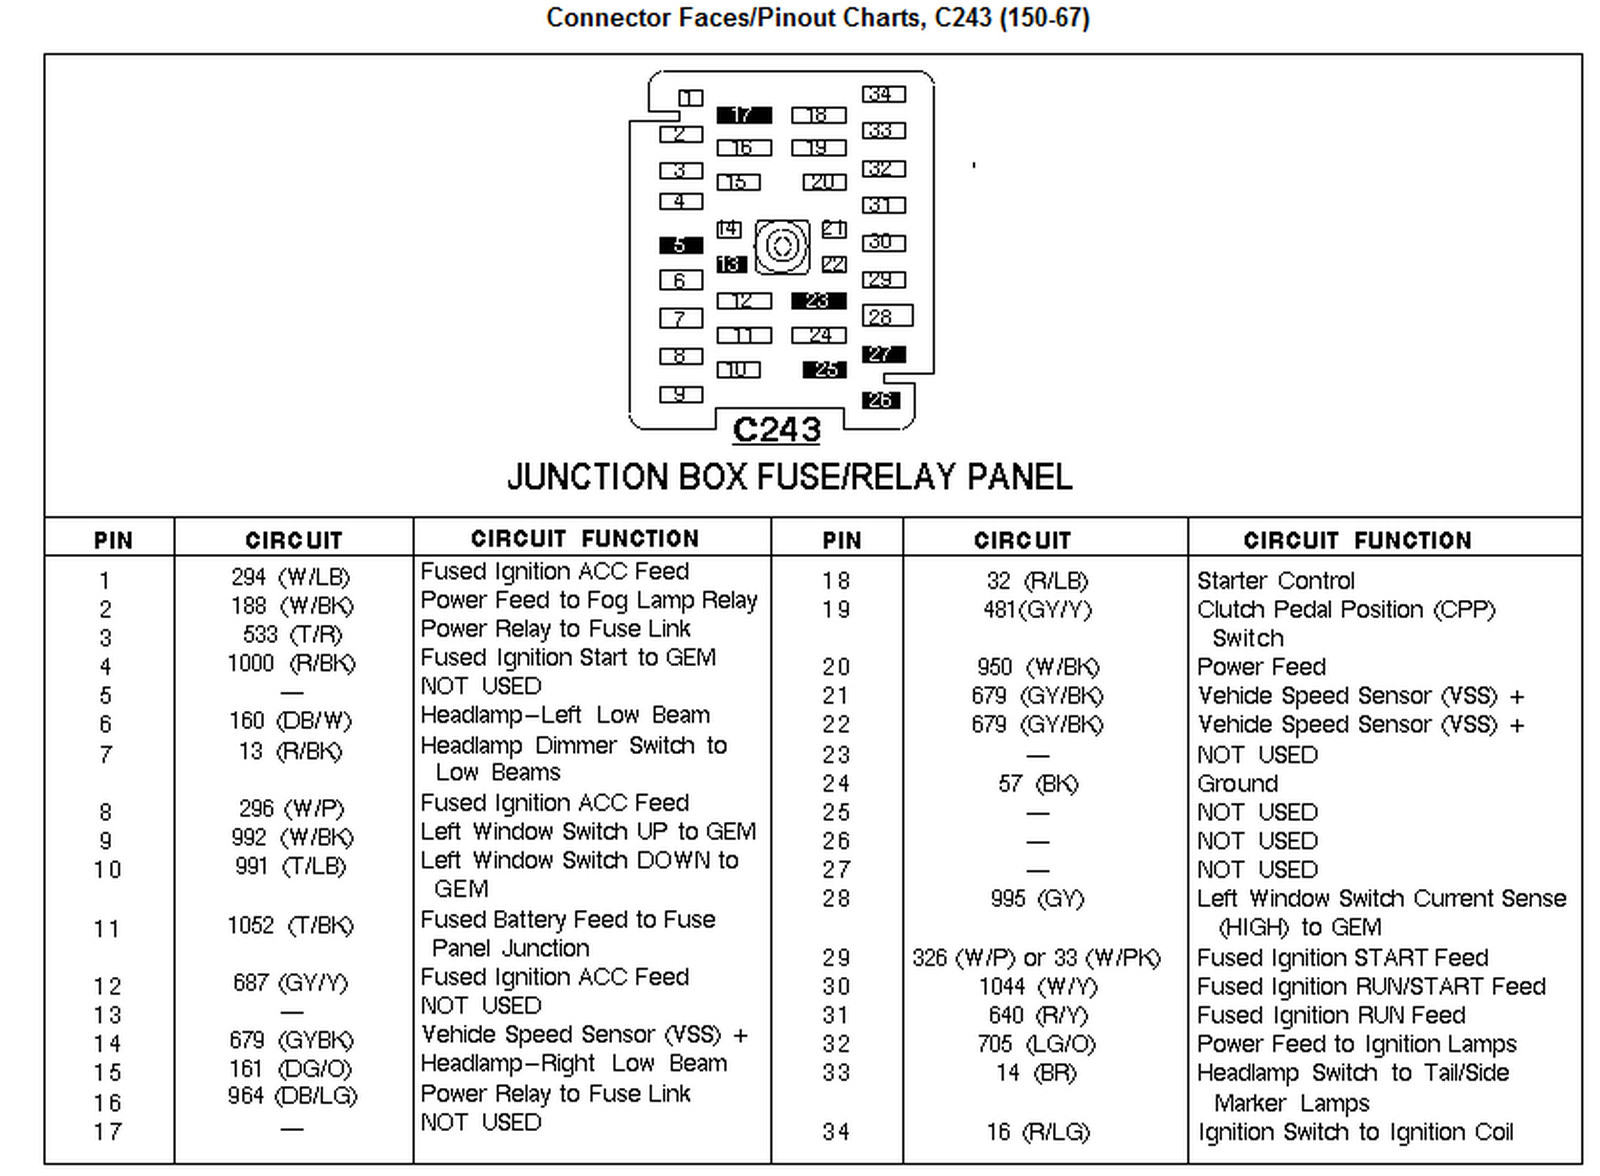 2000 Ford Expedition Fuse Diagram | Wiring Diagram - 1997 Ford F150 Trailer Wiring Diagram